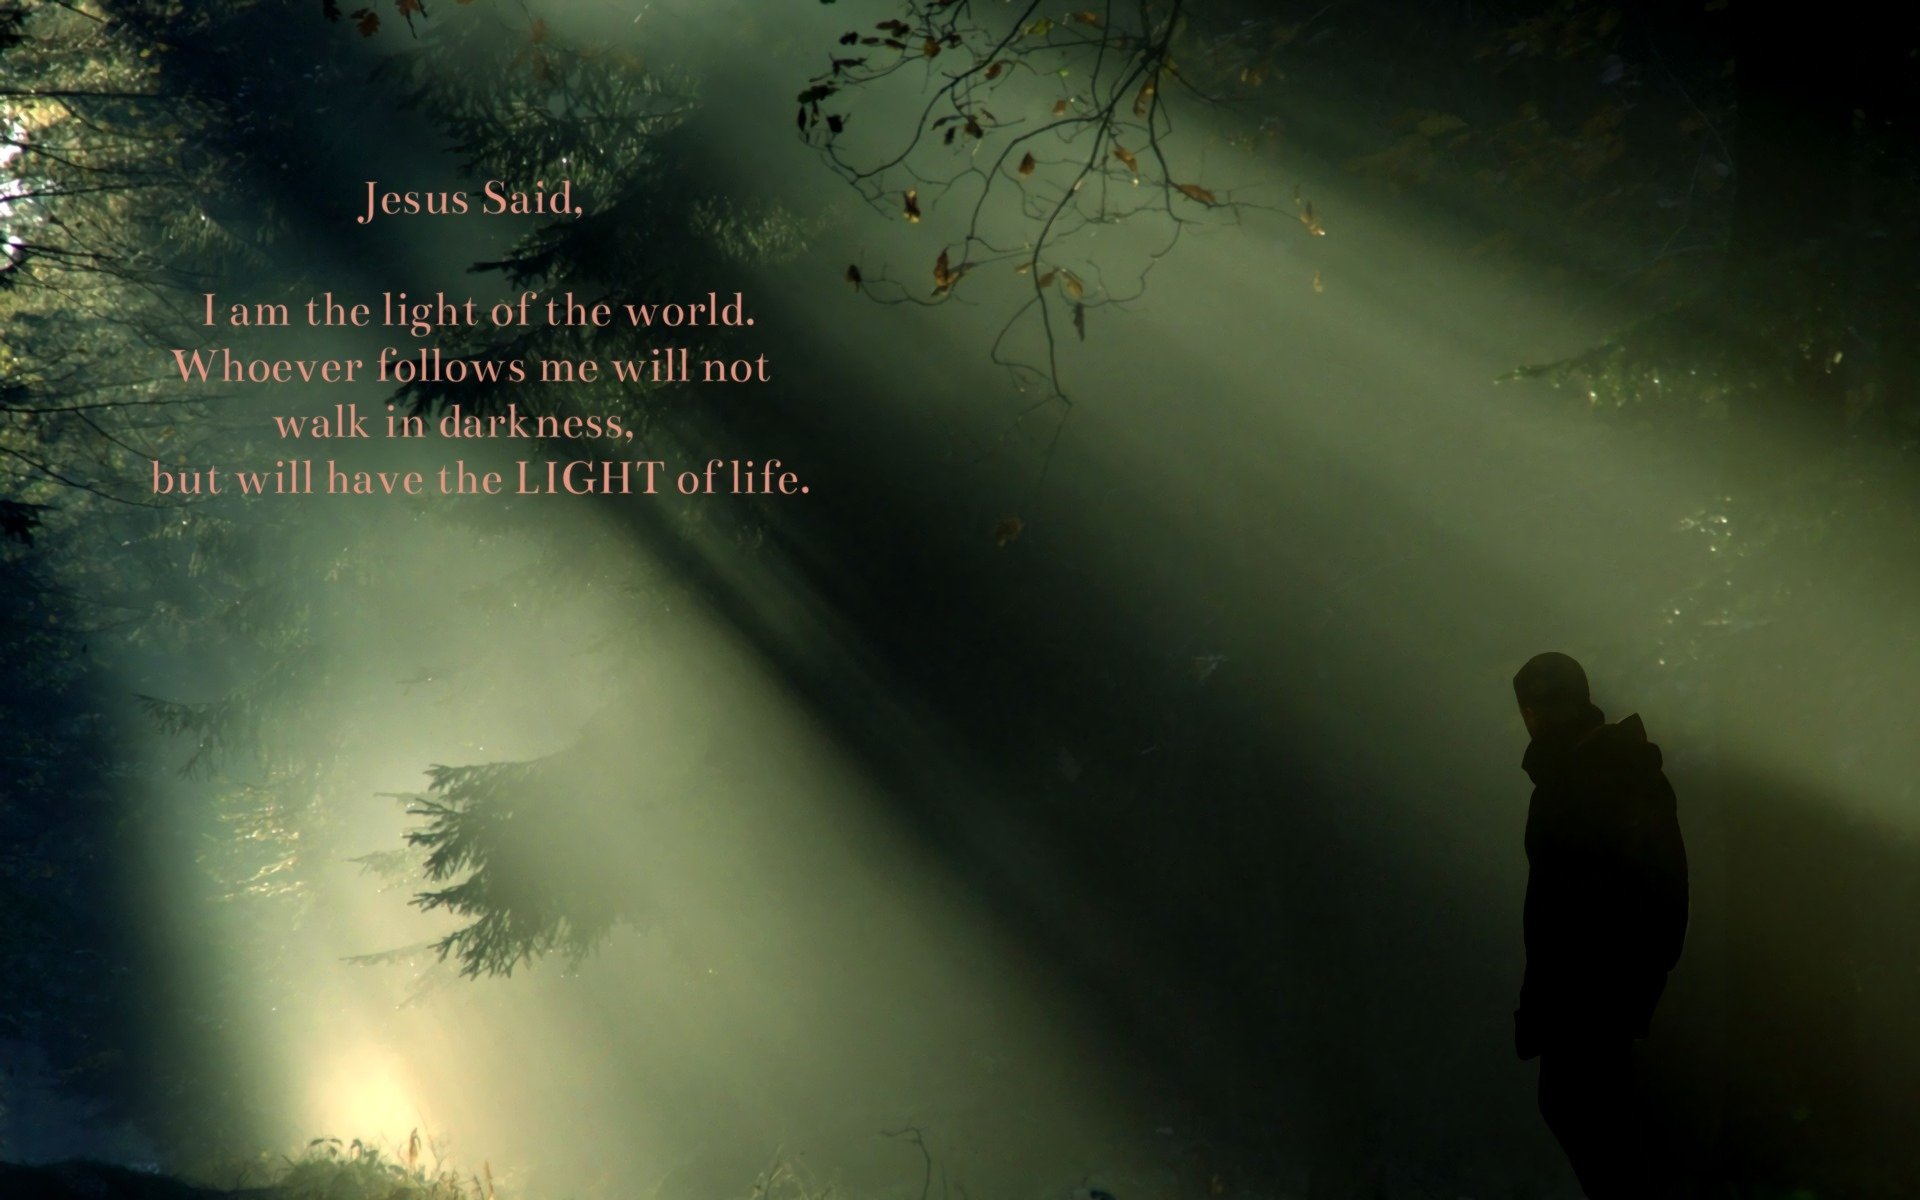 Cool Quote Wallpapers For Mobile Jesus Said I Am The Light Hd Wallpaper Background Image